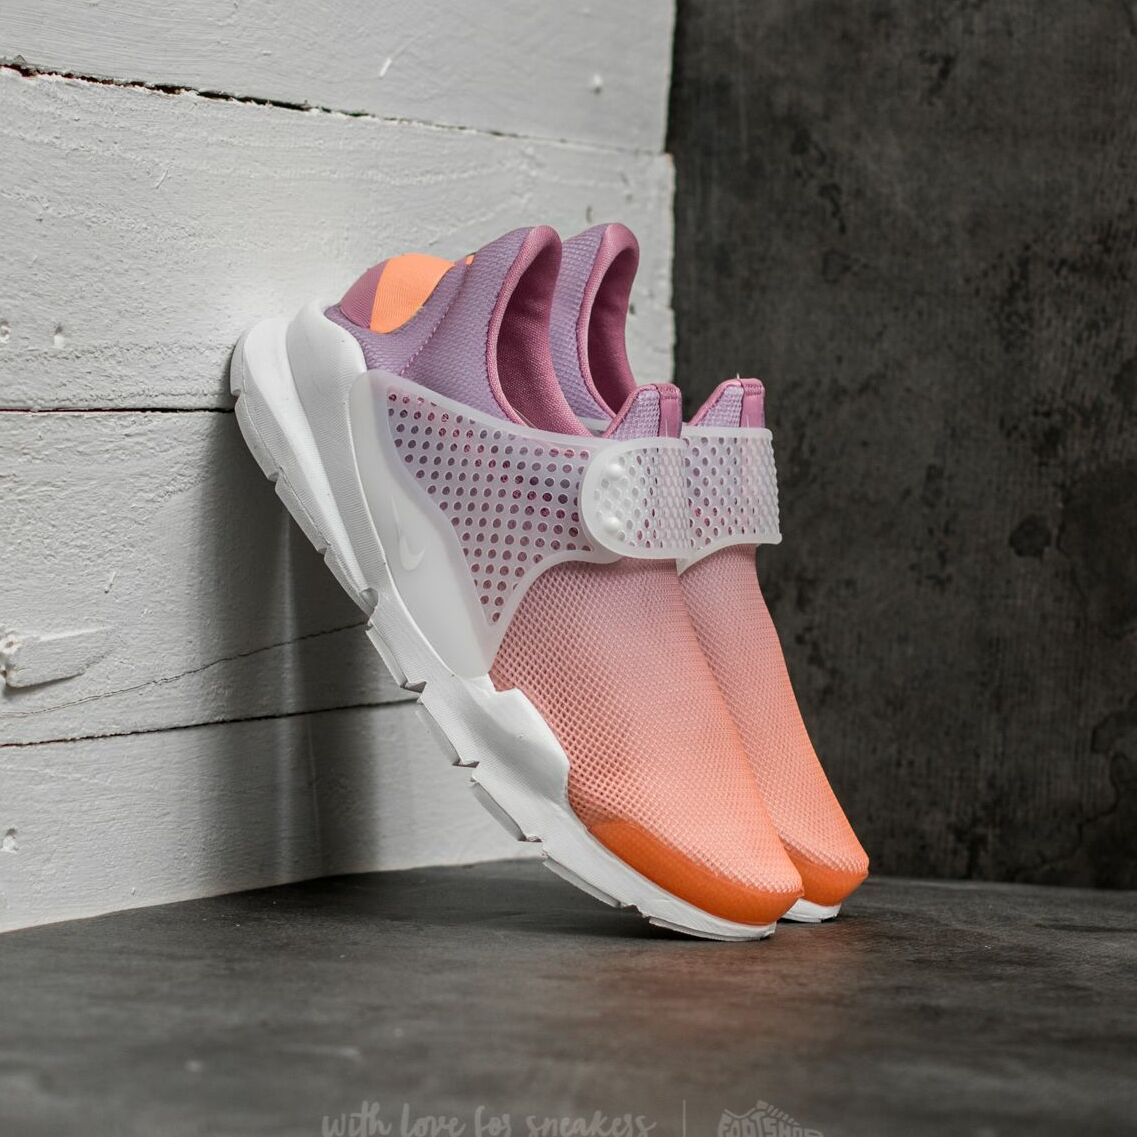 Nike Wmns Sock Dart Br Sunset Glow/ White-Orchid 896446-800